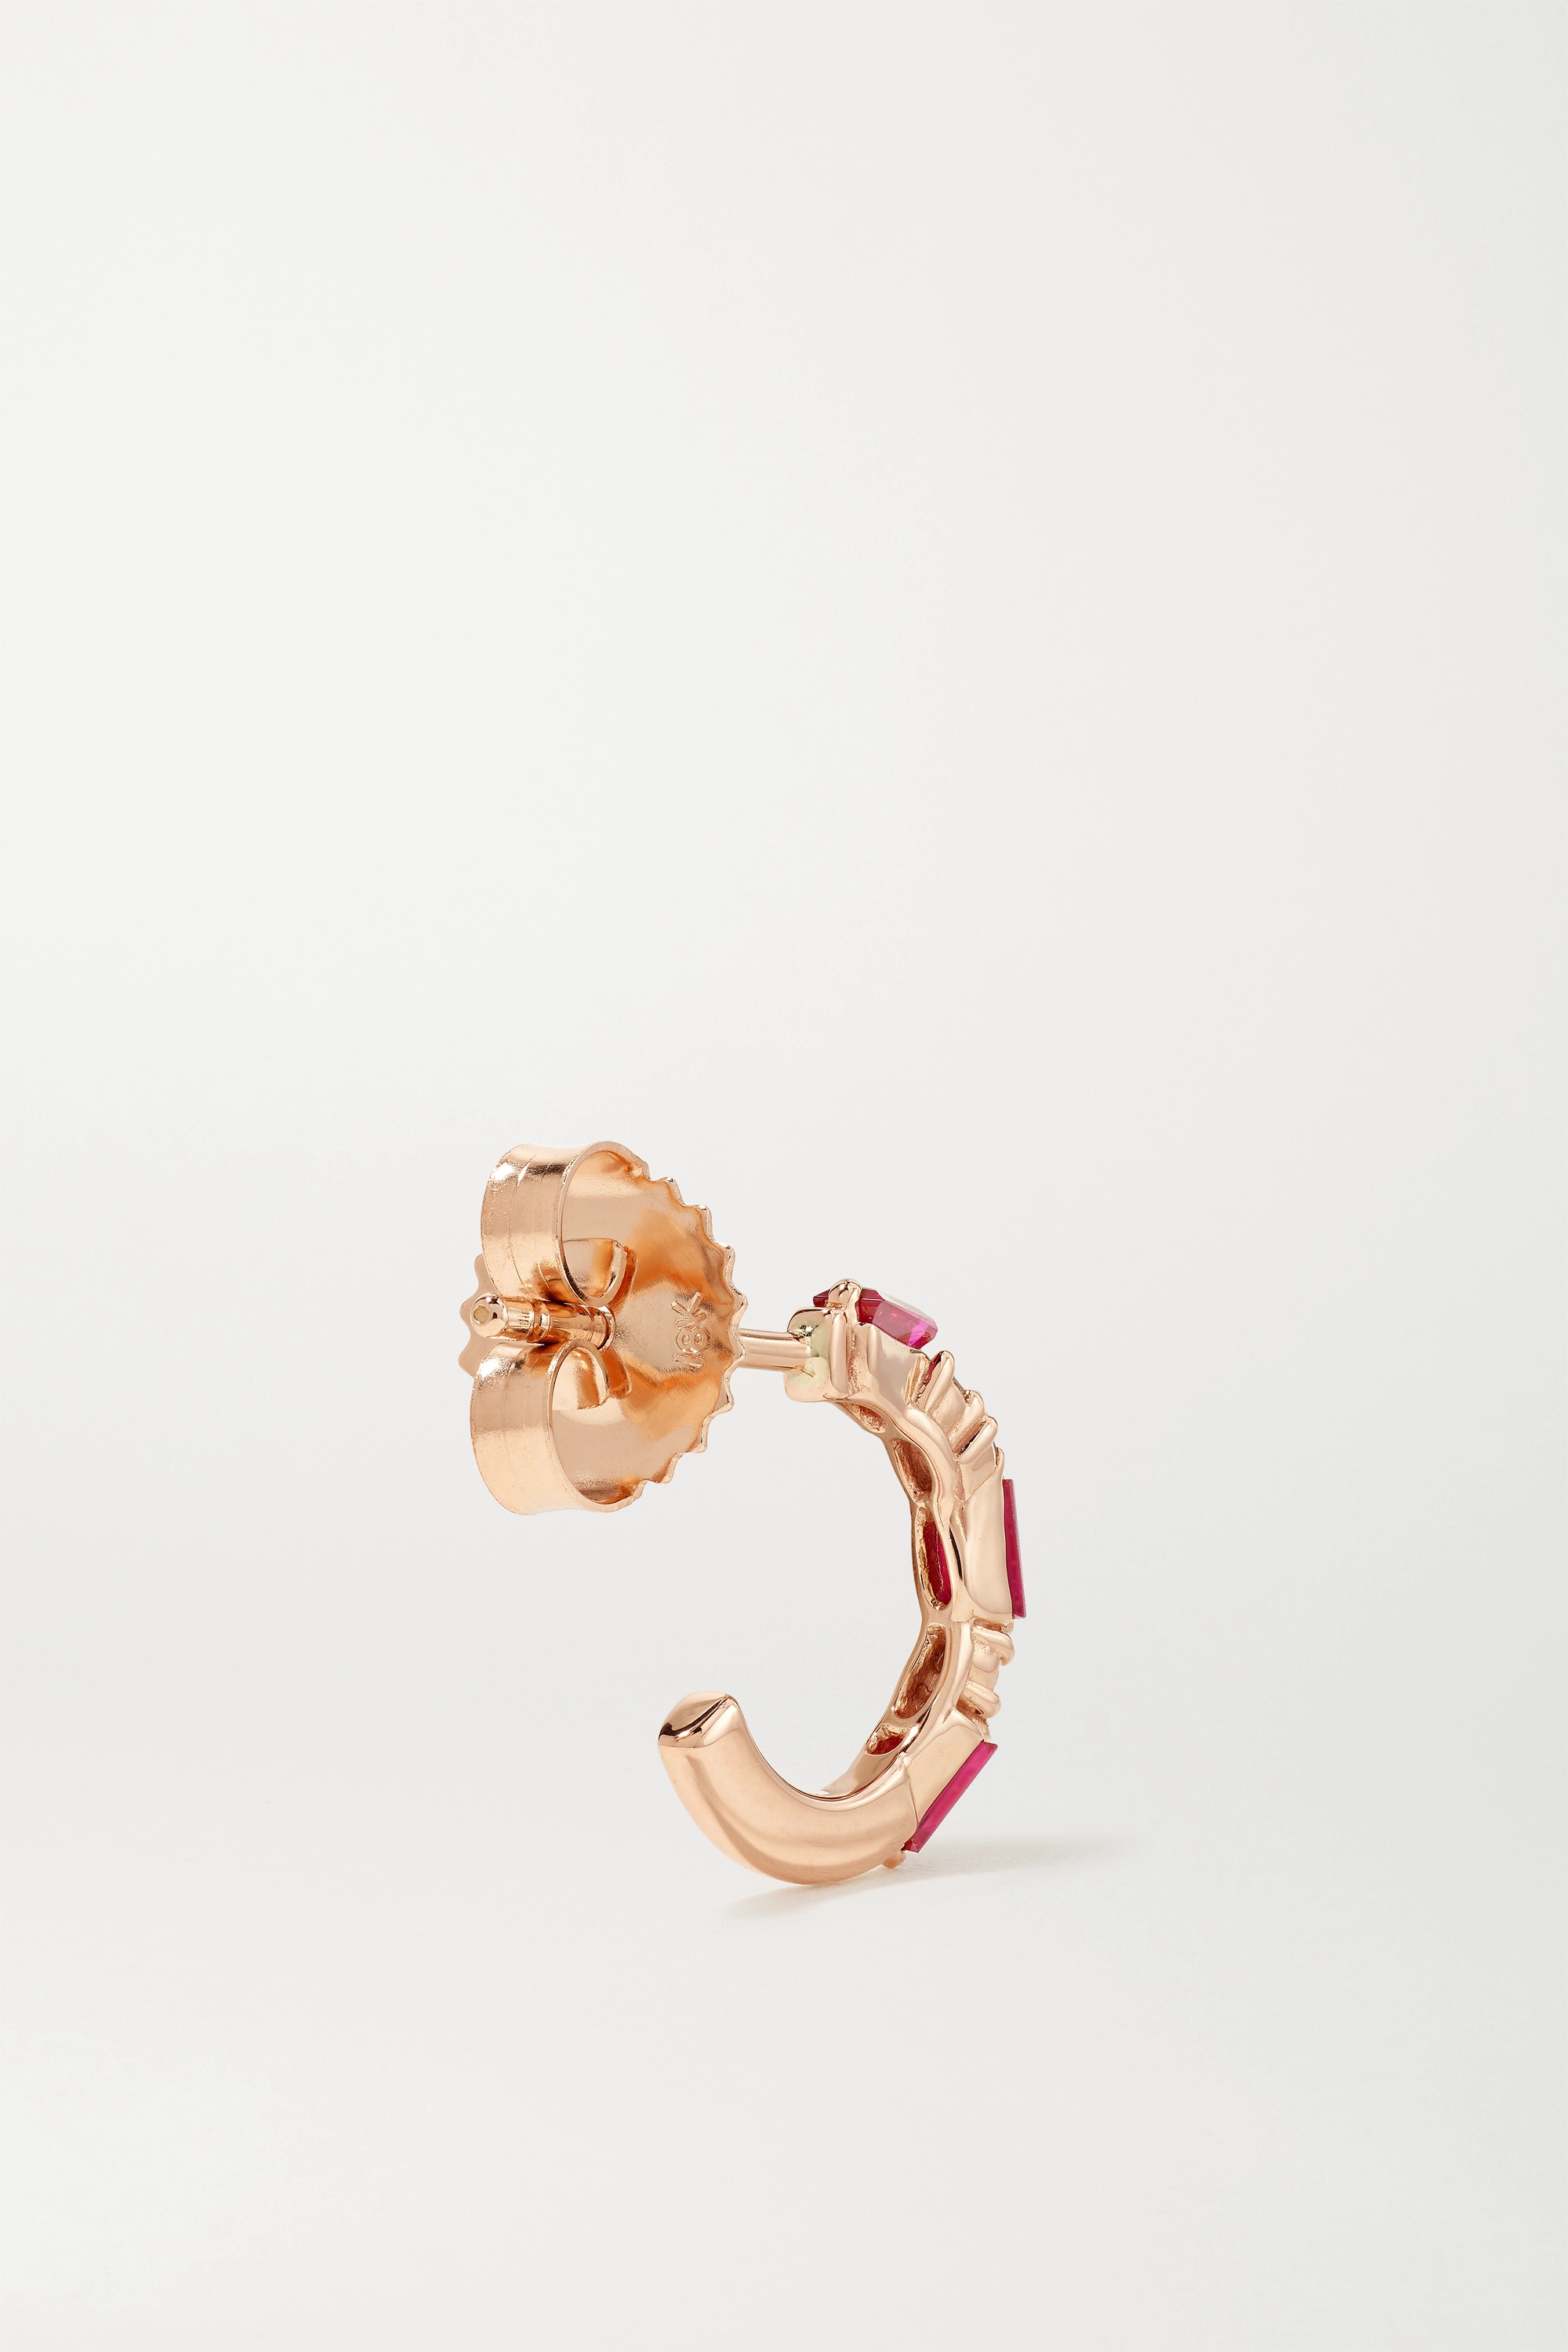 SUZANNE KALAN 18-karat rose gold, ruby and diamond hoop earrings